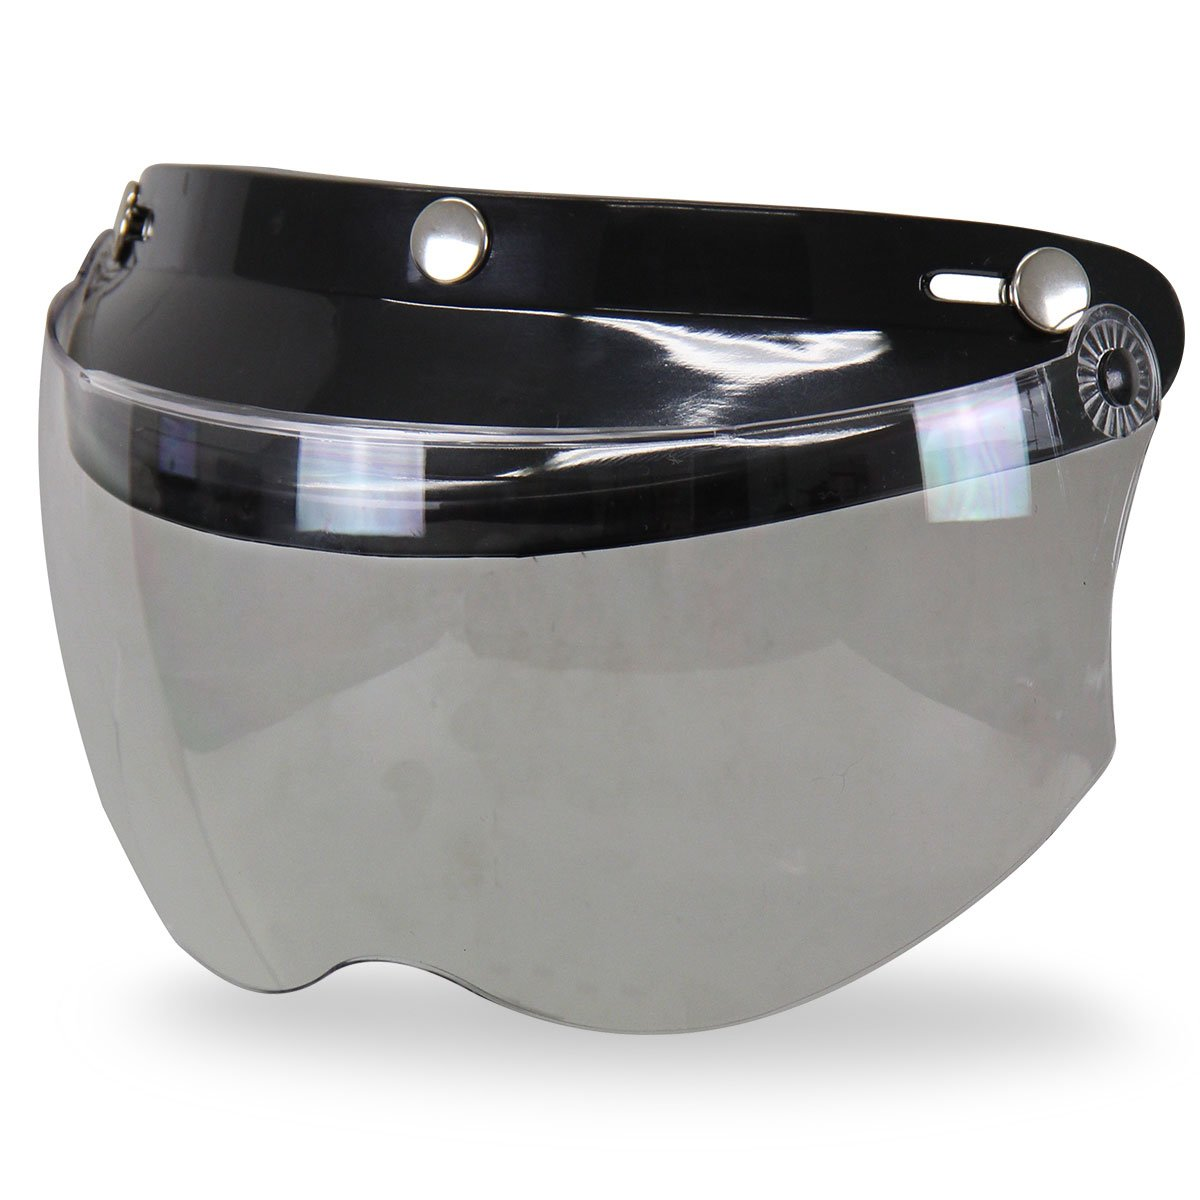 Outlaw Universal 3 Snap-Button Visor with Flip-up Light Smoke Shield - One Size